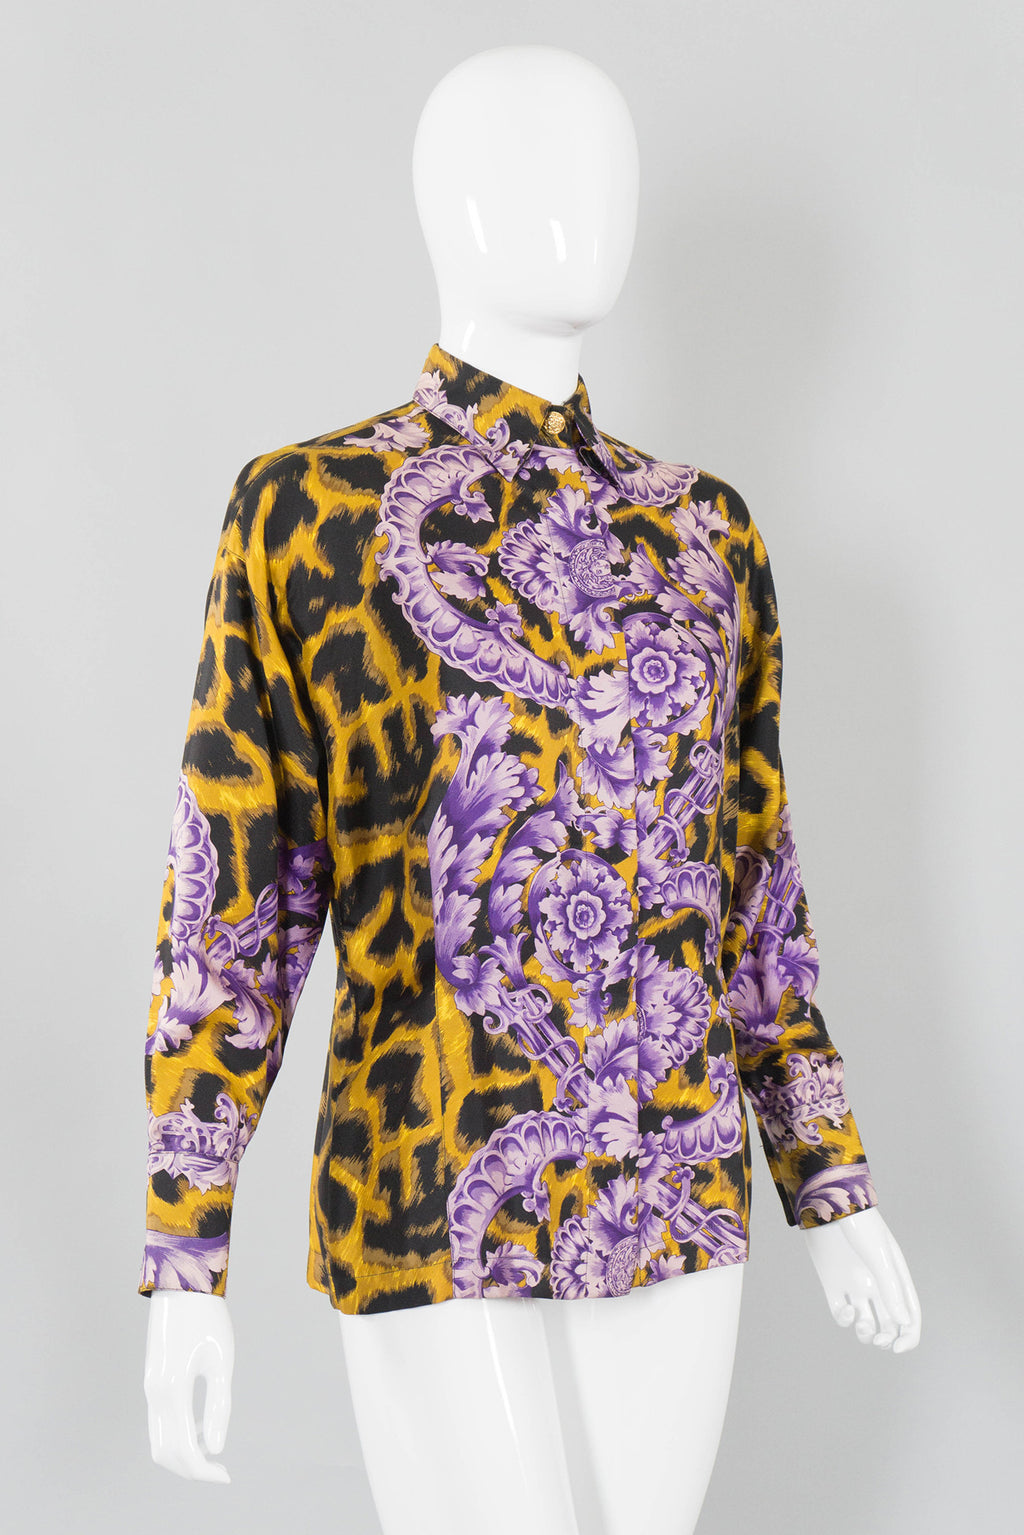 Gianni Versace Cheetah Flourish Print Blouse Side Front